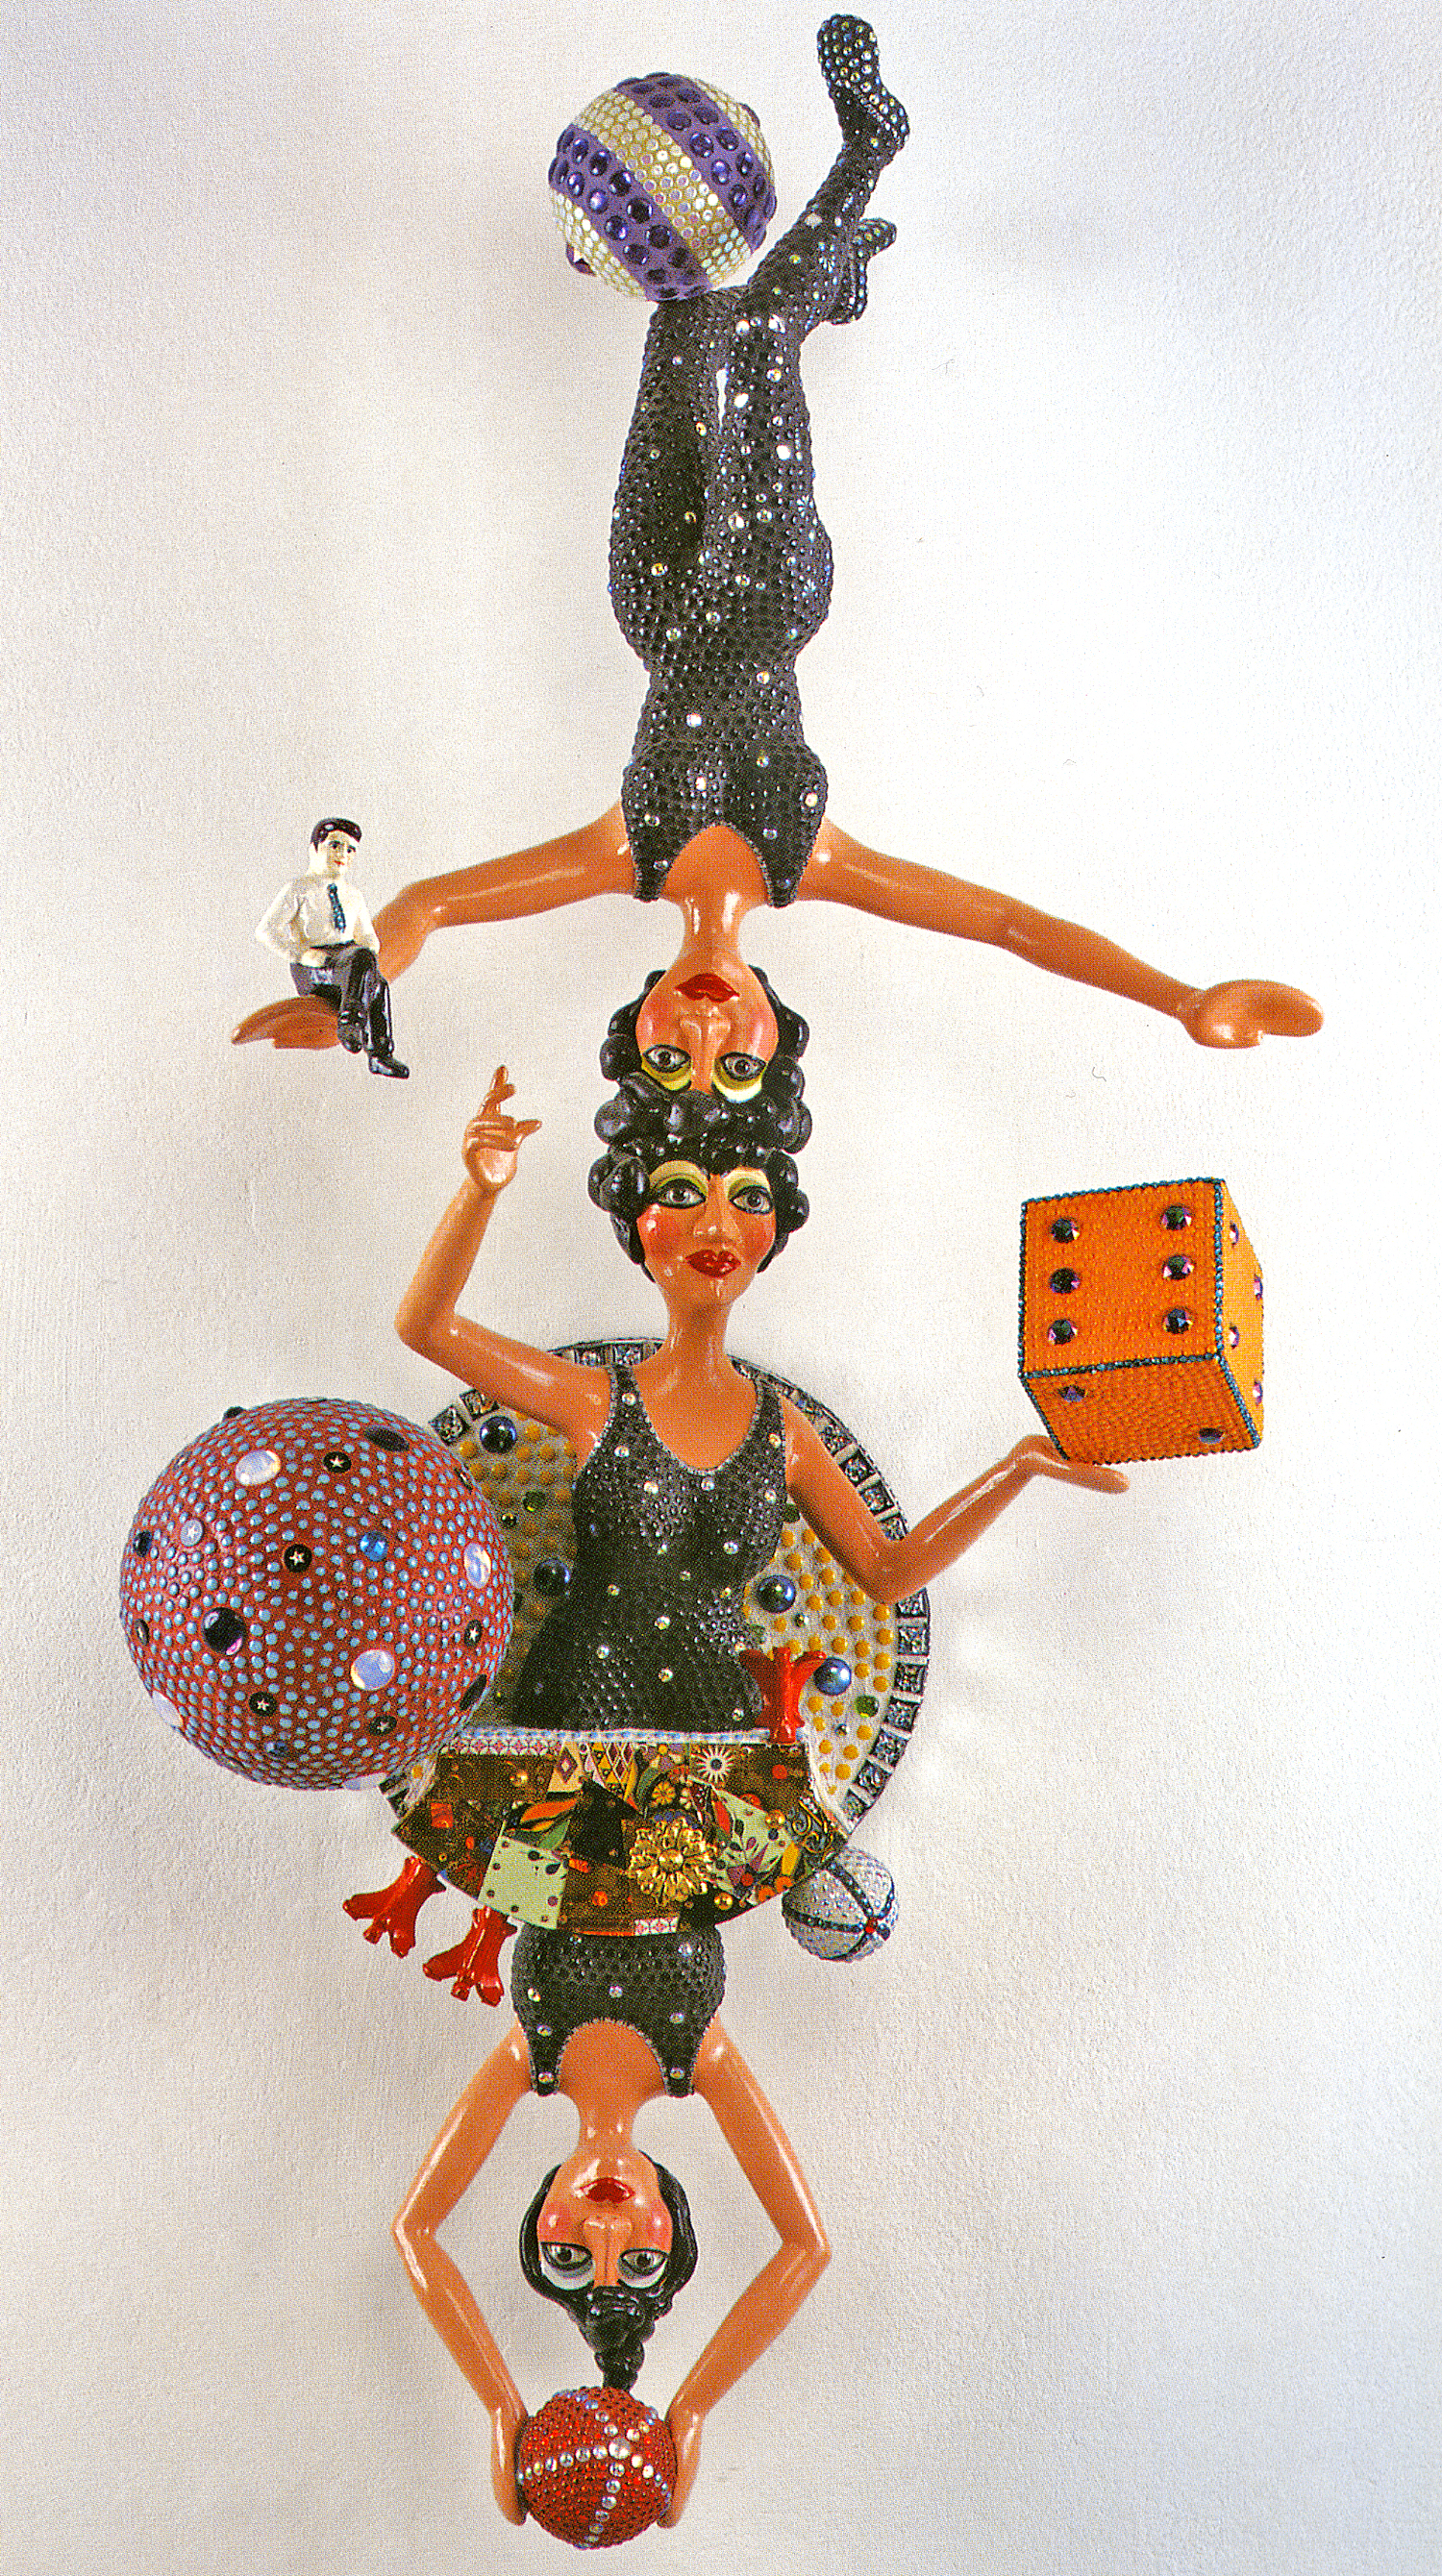 Three Jugglers, 2004